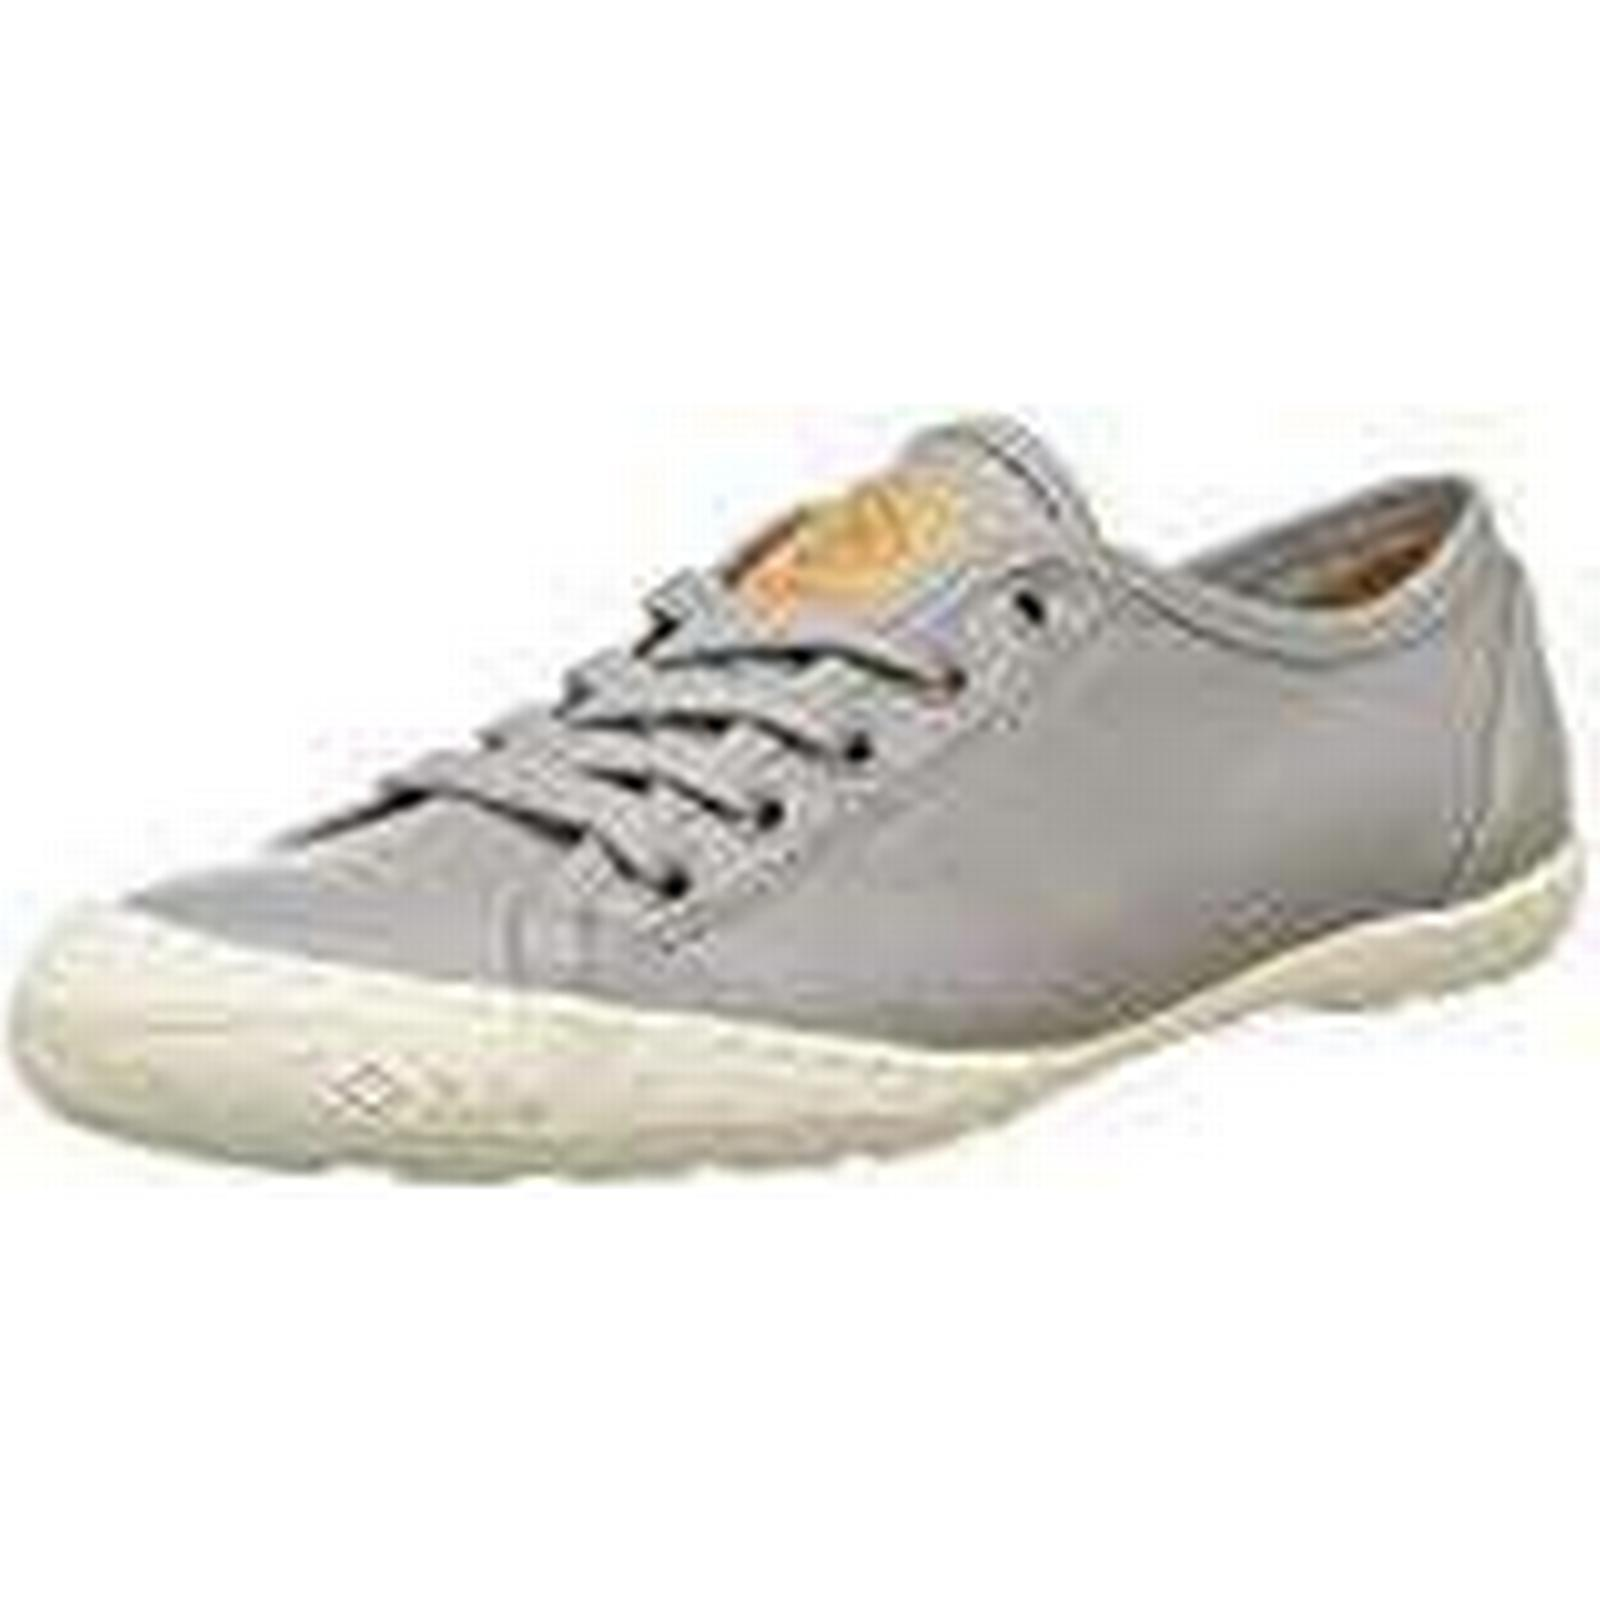 PLDM by Palladium Women's Game Vac Low grey EU) Size: 4 UK, (37 EU) grey 72747b